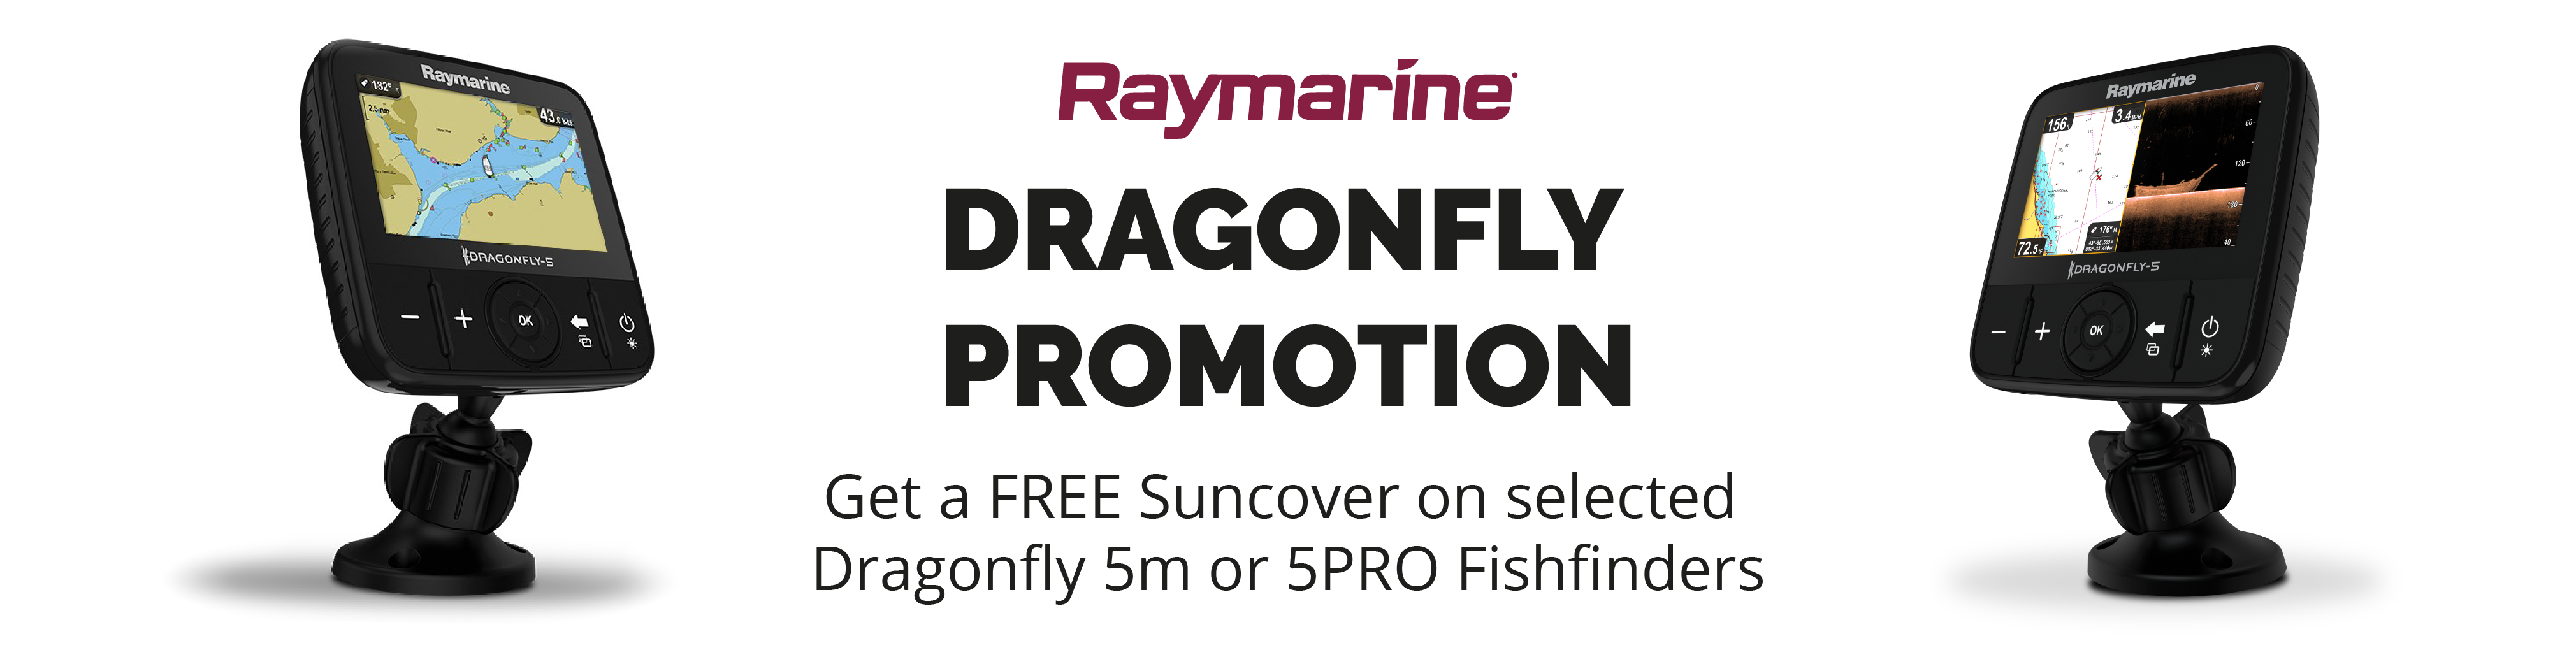 Rowlands Raymarine Dragonfly Promotion Banner